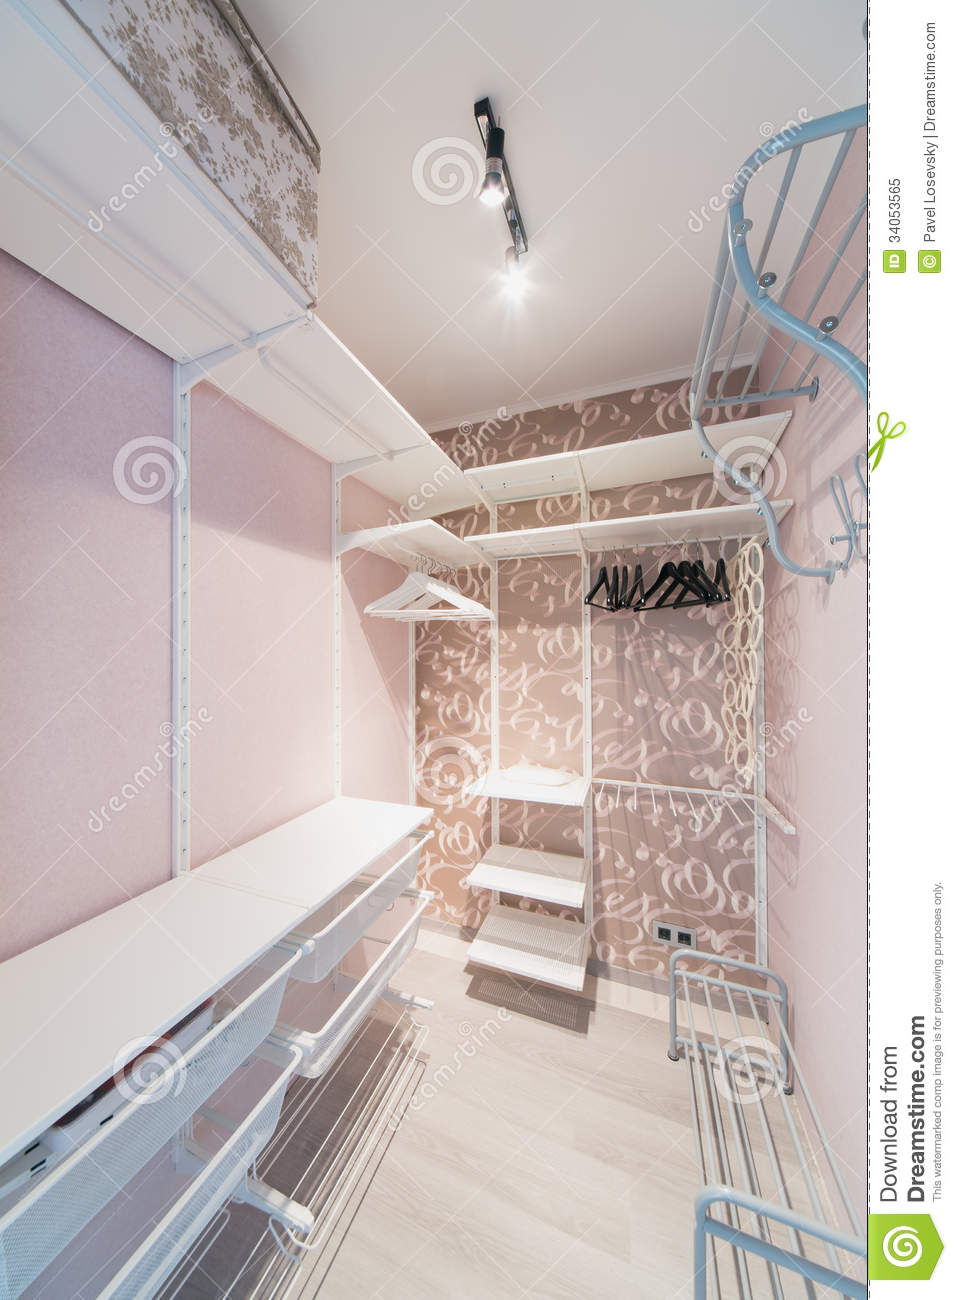 3d exterior design free download with Royalty Free Stock Photo Small Modern Dressing Room Made Pink Hangers Shelves Image34053565 on 646 as well Royalty Free Stock Photo Patterns Lino Image15013415 likewise Royalty Free Stock Photos 3d Render Modern Building Image5328208 as well Royalty Free Stock Photo Small Modern Dressing Room Made Pink Hangers Shelves Image34053565 moreover Royalty Free Stock Photography City Typography Artwork Image14308807.